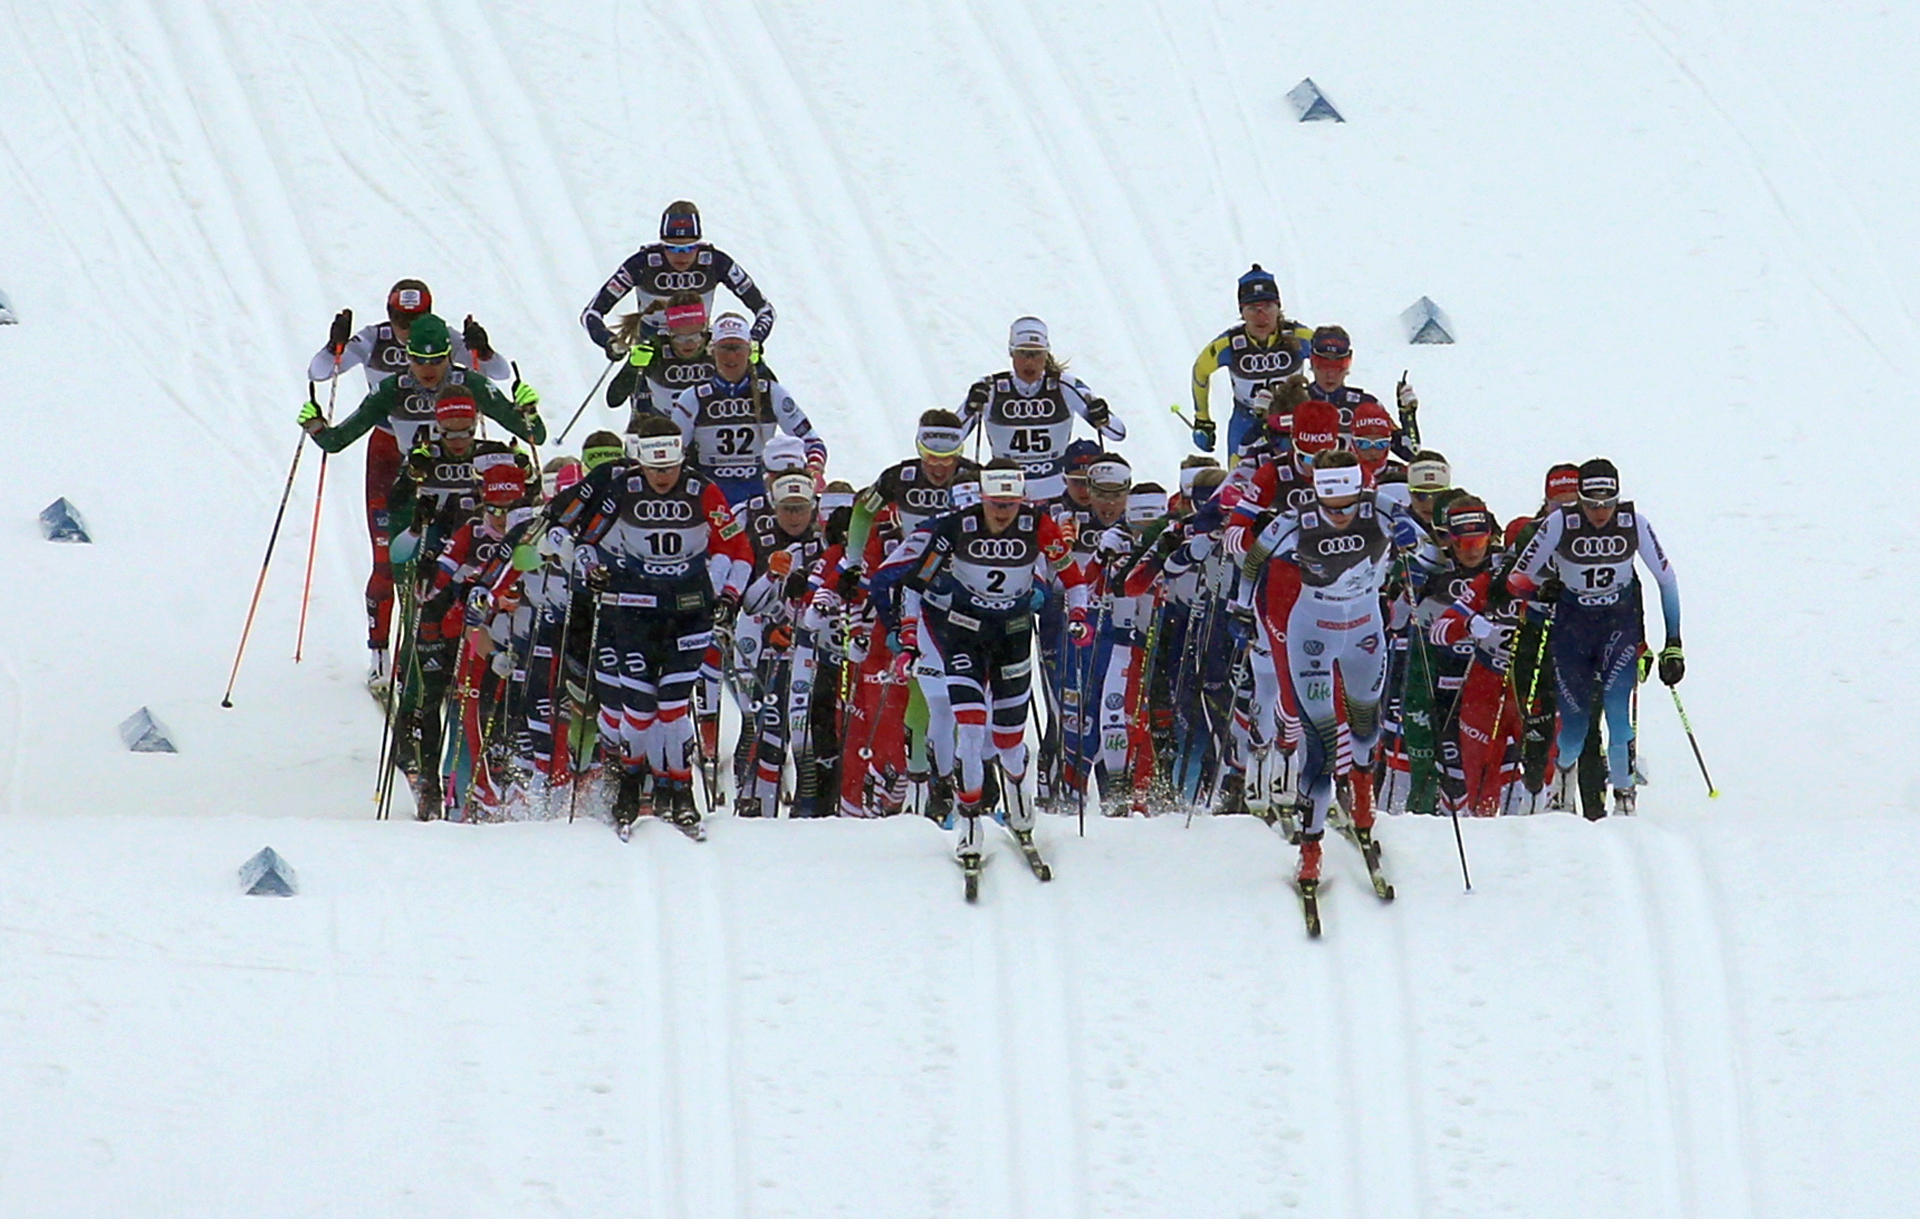 Women's TdS start in Oberstdorf, Germany